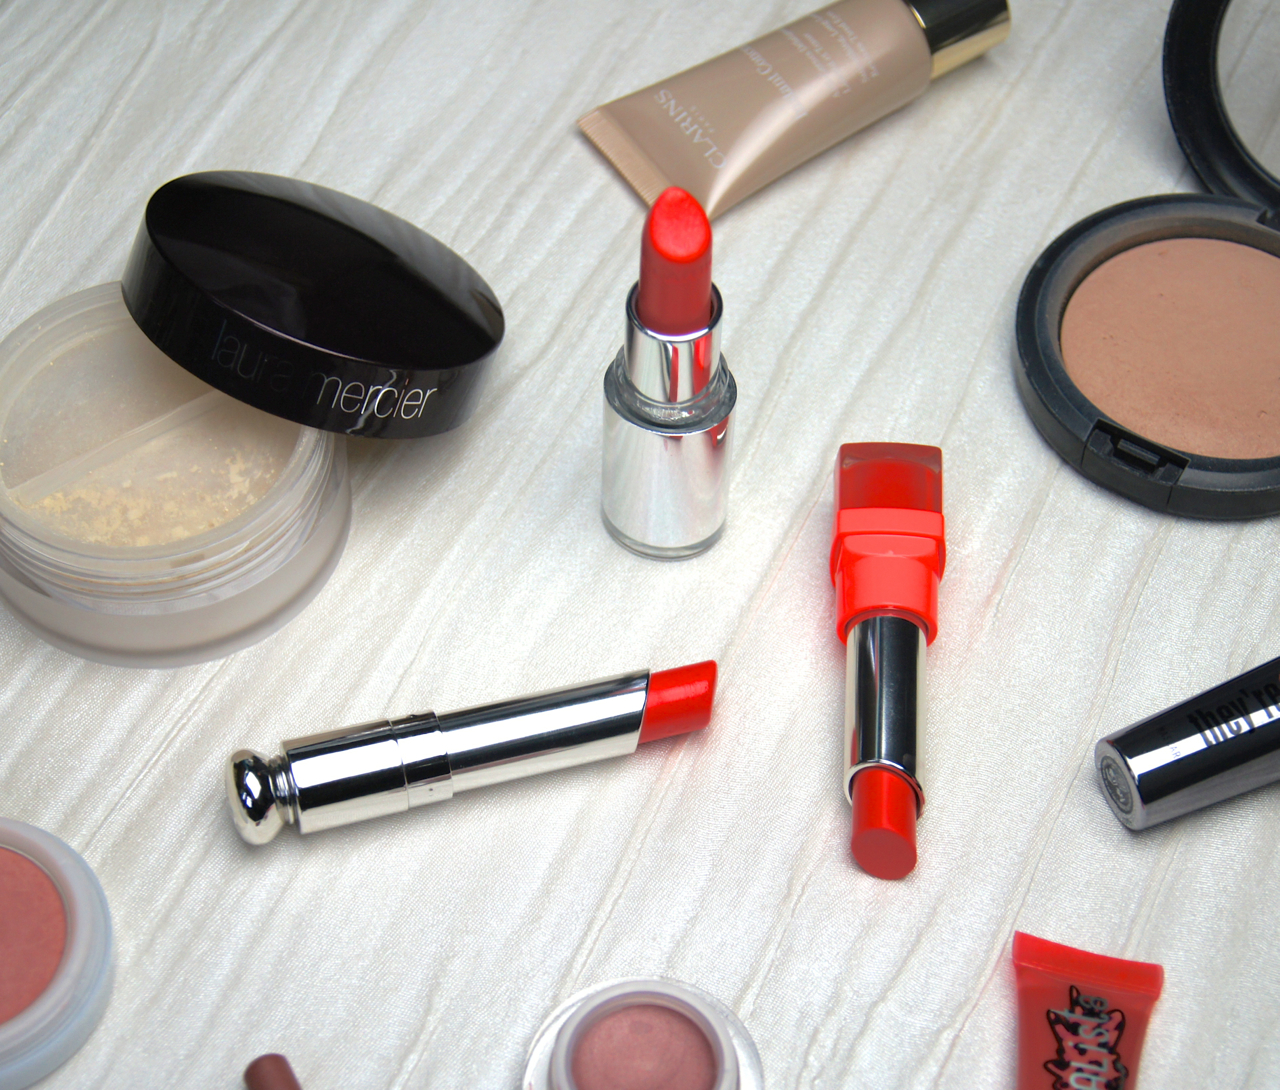 save spend splurge glossy coral lipsticks dior clarins bourjois swatches